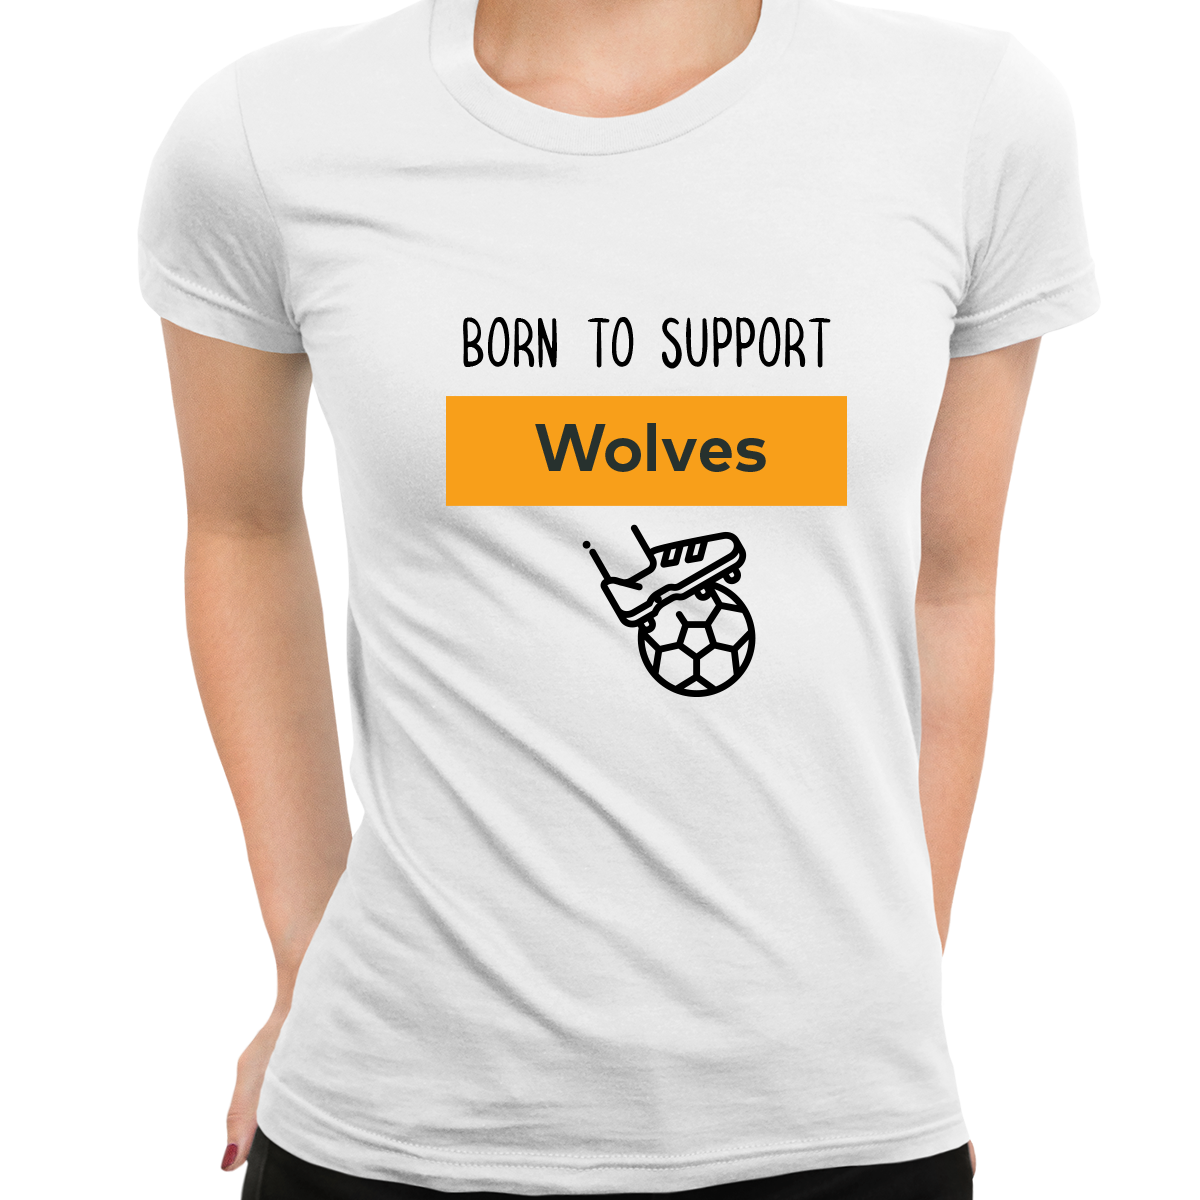 Women Born to Support For Wolves Football Club Ladies Eco Crew Neck White T-Shirt